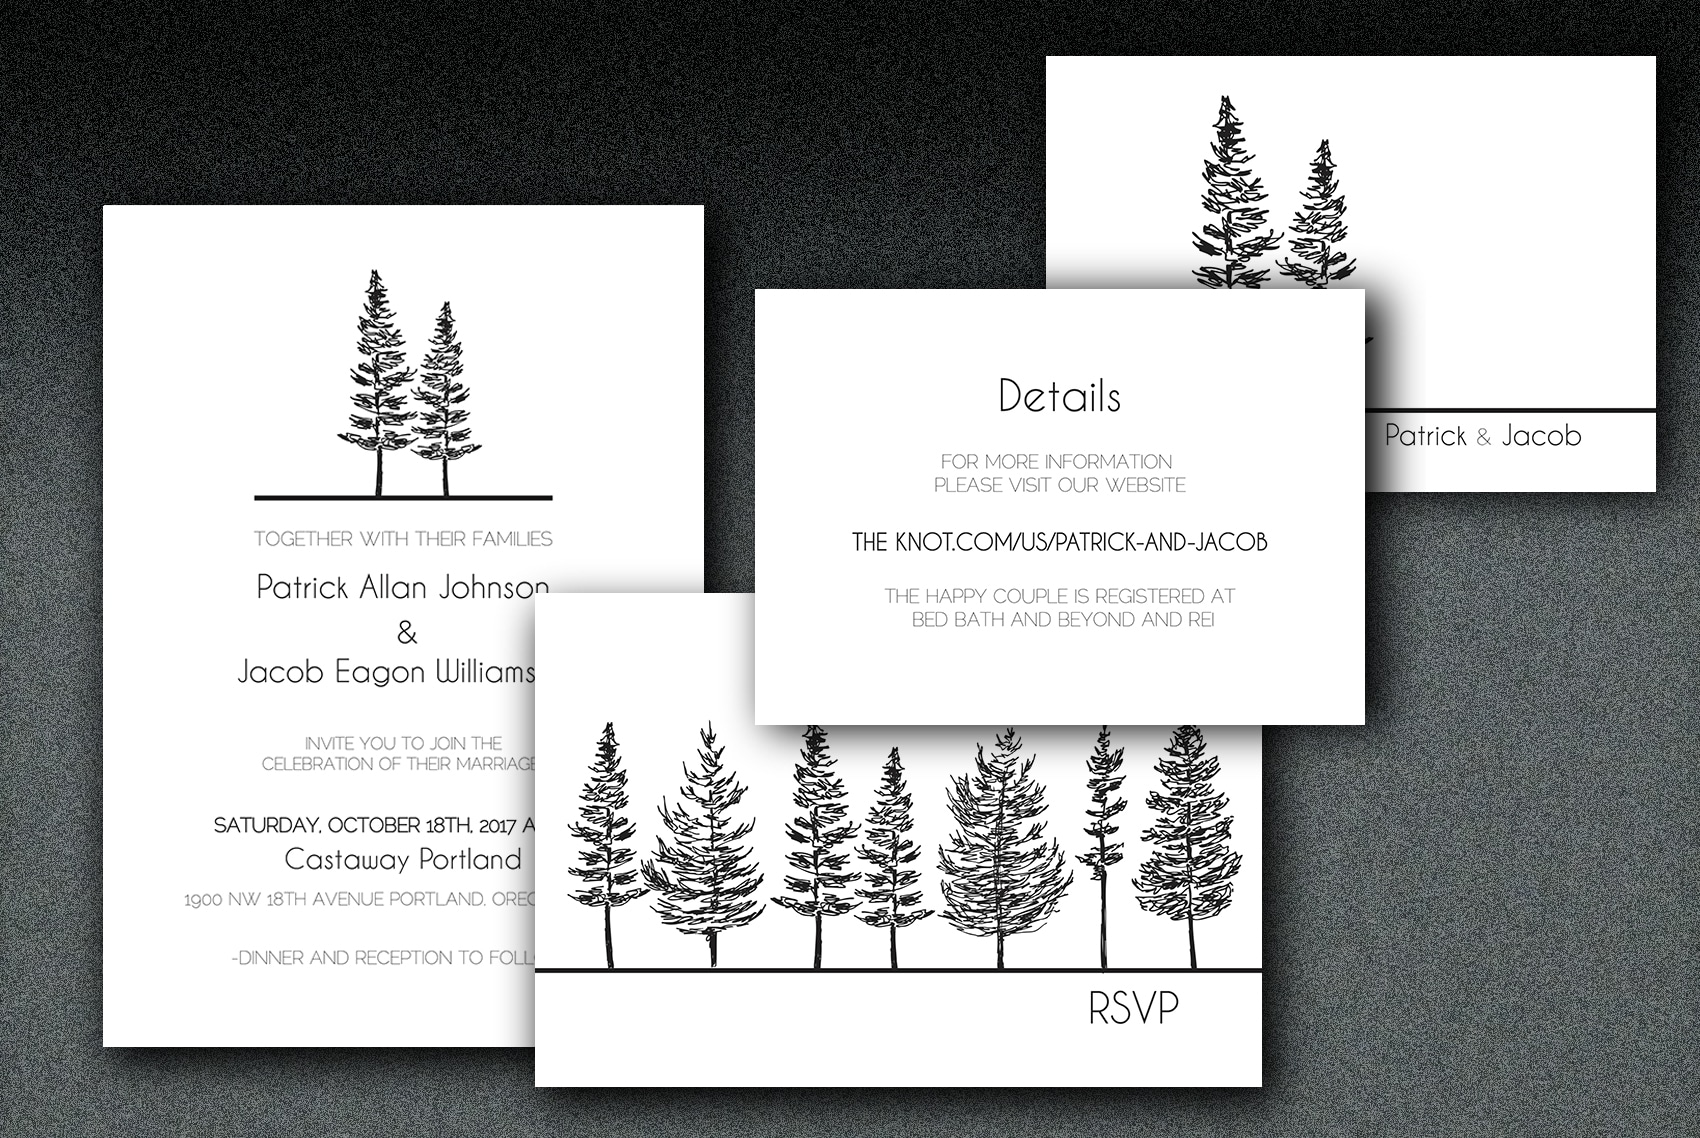 Printed on white linen paper, these wedding invitations have a tree motif printed on matching linen envelopes..